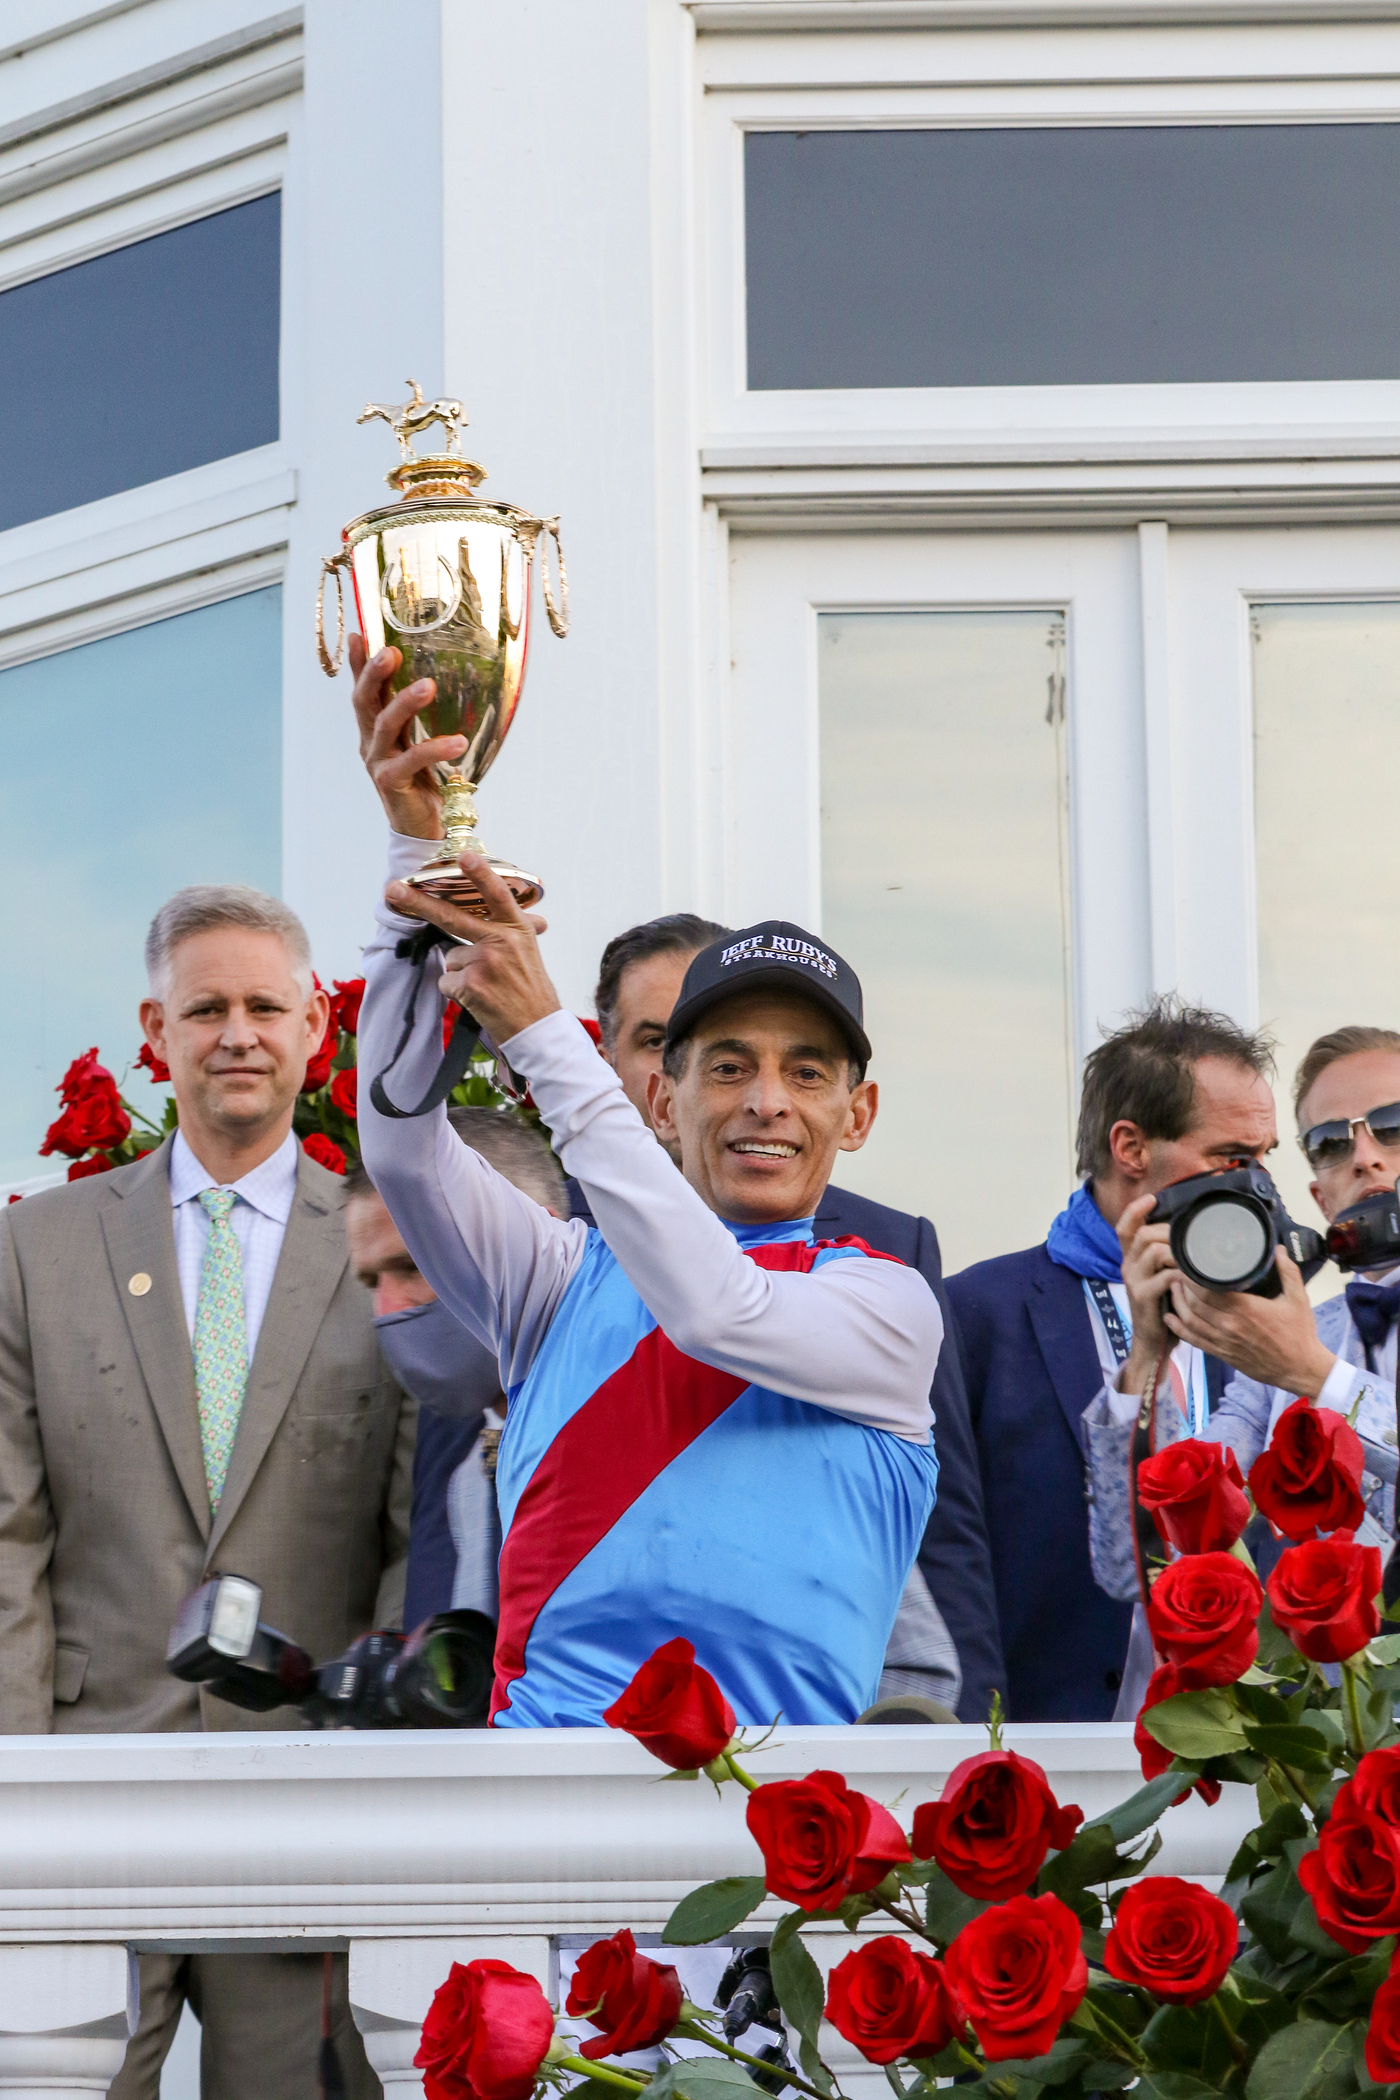 Longines Flat Racing Event: Longines timed the victory of Medina Spirit in the 147th Kentucky Derby 7